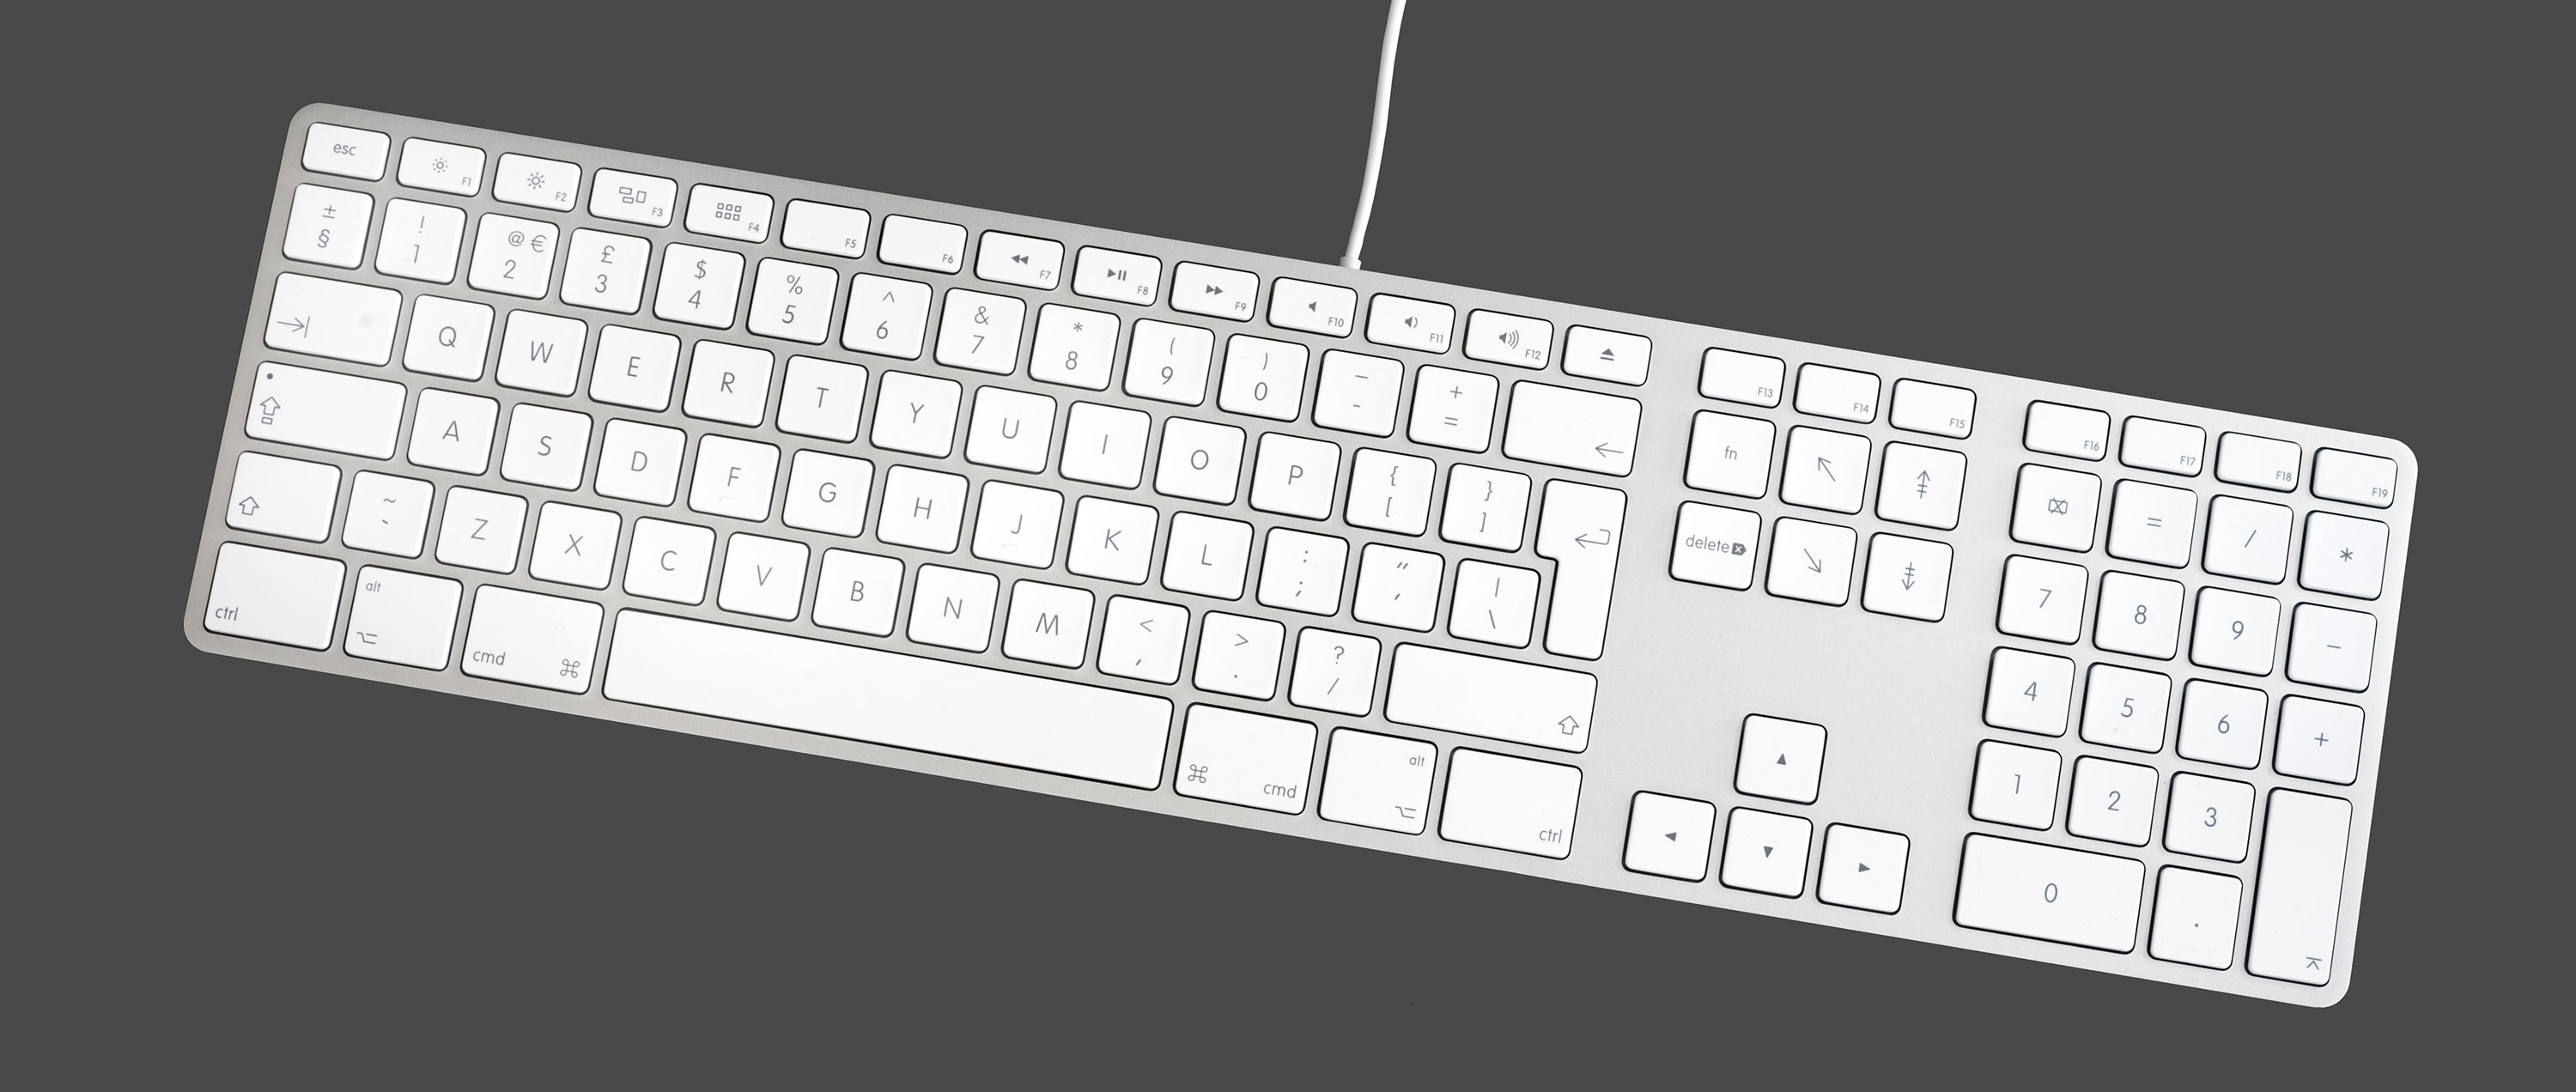 Apple keyboard - used under CC-BY-SA from https://commons.wikimedia.org/wiki/File:Apple_Keyboard_with_Numeric_Keyboard_9612.jpg